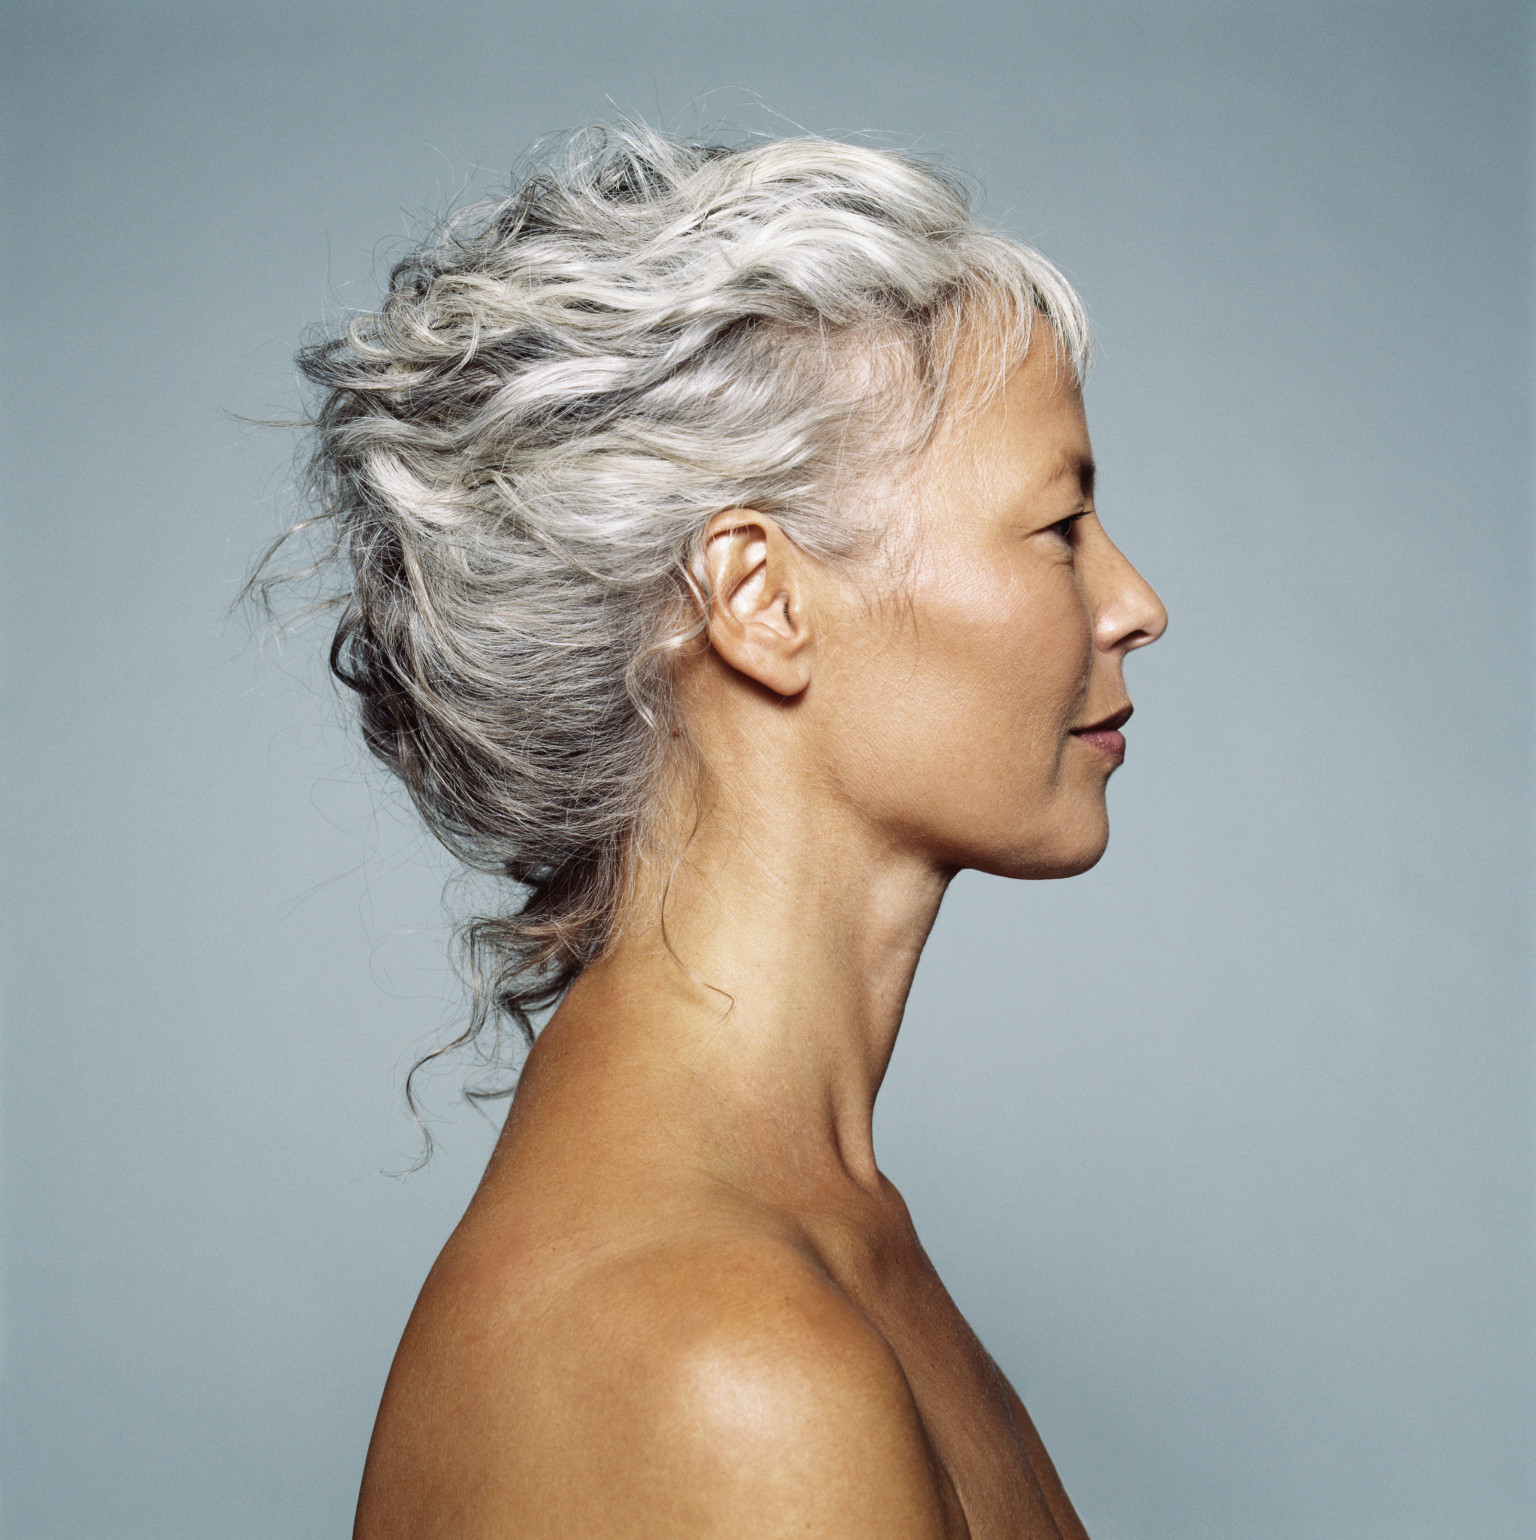 Multi-Vitamin Offers Alternative Way To Deal With Grey Hair